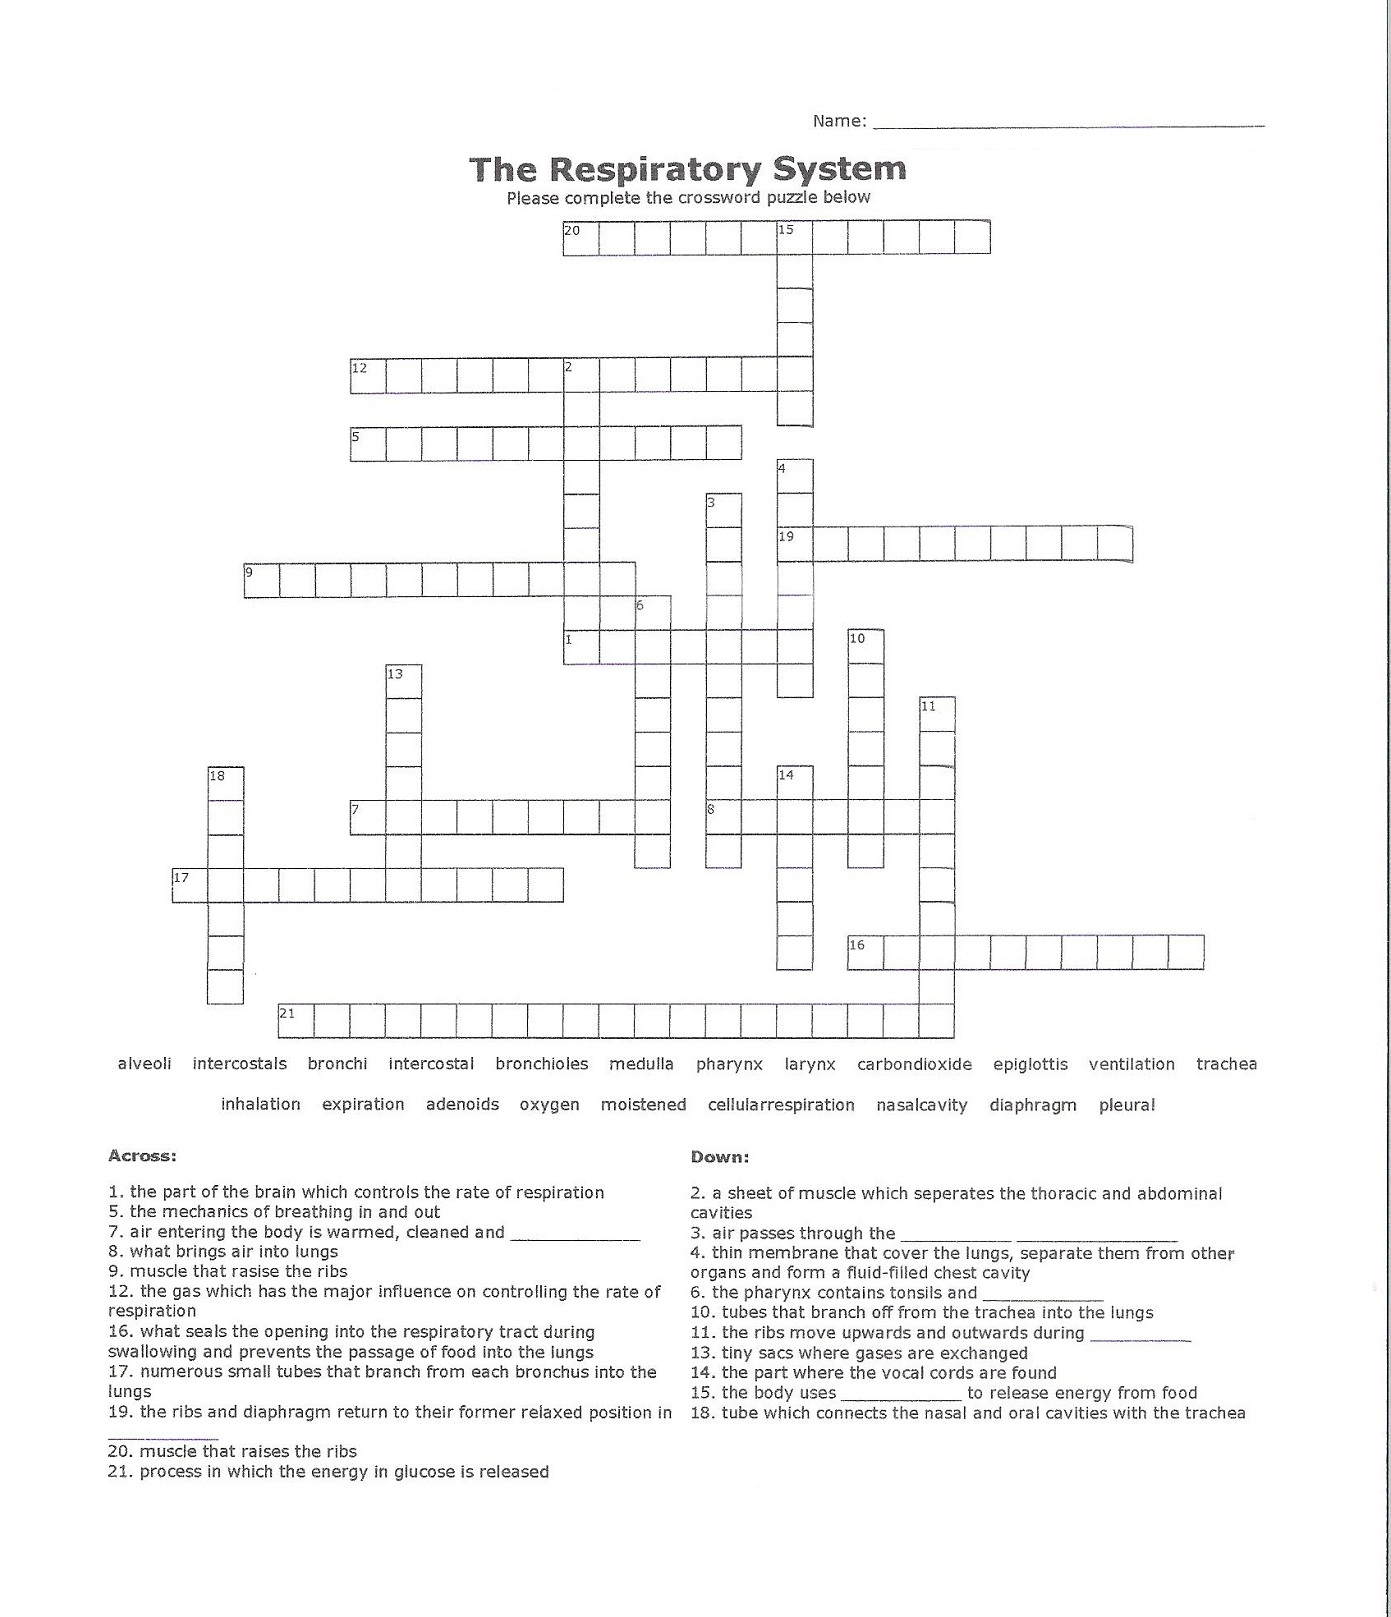 Respiratory System Crossword Puzzle | Activity Shelter - Respiratory System Crossword Puzzle Printable